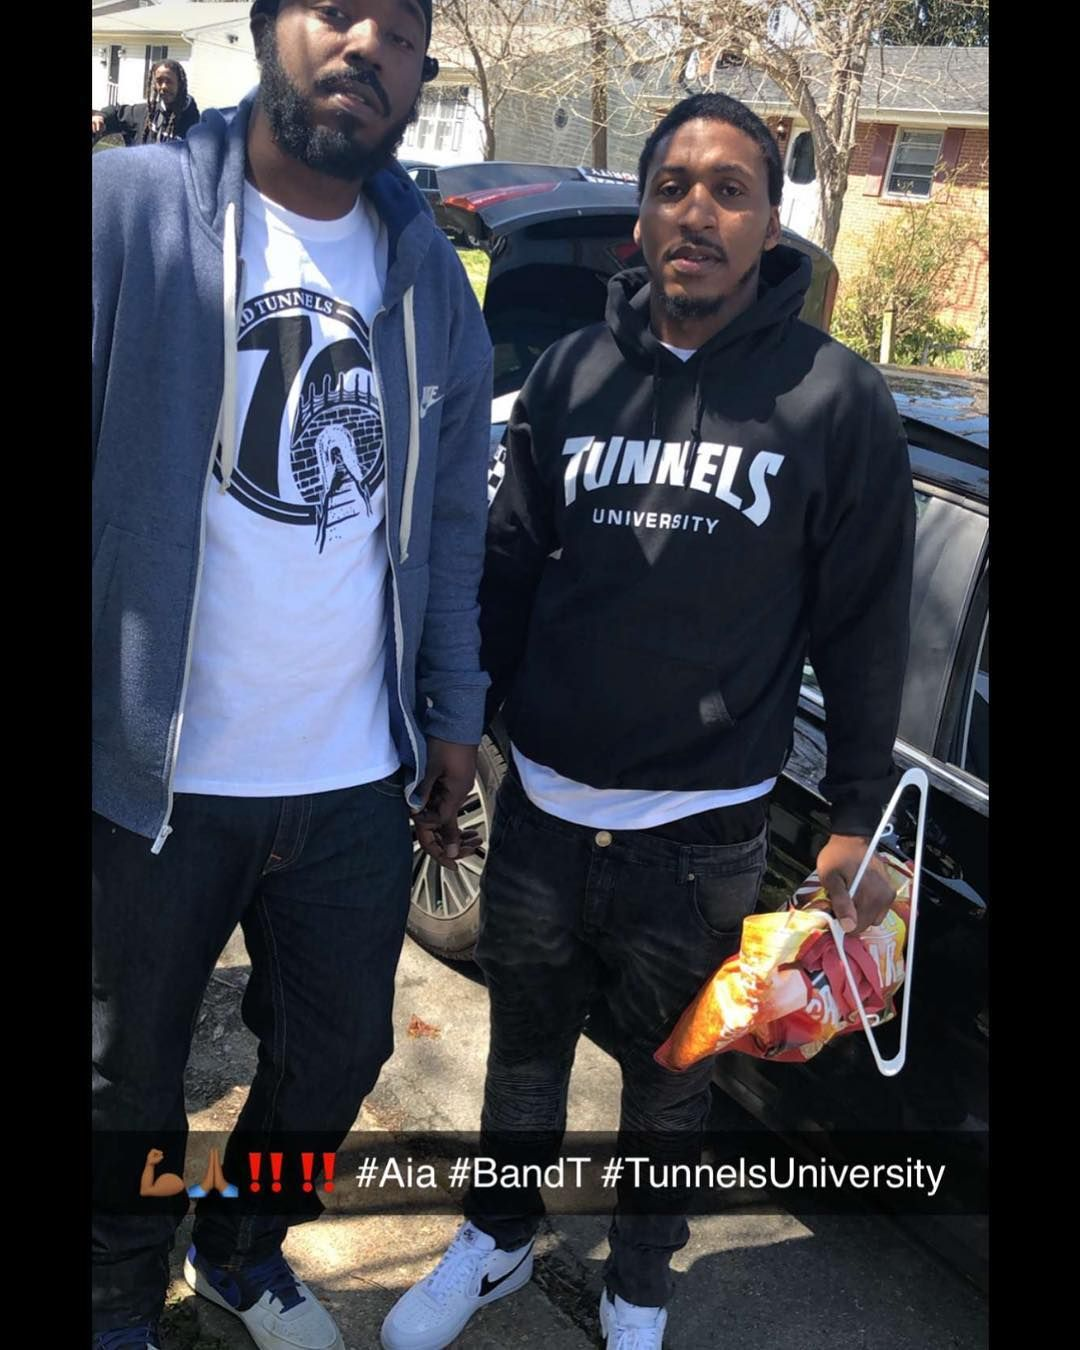 """✔pictame webstagram 🔥🔥🔥 Instagram post by @bridges_and_tunnels_   🚨🚨All black base """"TunnelsUniversity @ hoodies SOLD OUT ‼️‼️‼️ Limited White &Black shirts 4 remain!! Big s/o to the -If you can't get over the obstacles of life like BRIDGES get through them like TUNNELS 🙏🏾🚨🚨🚨   🔥GPLUSE.CLUB"""